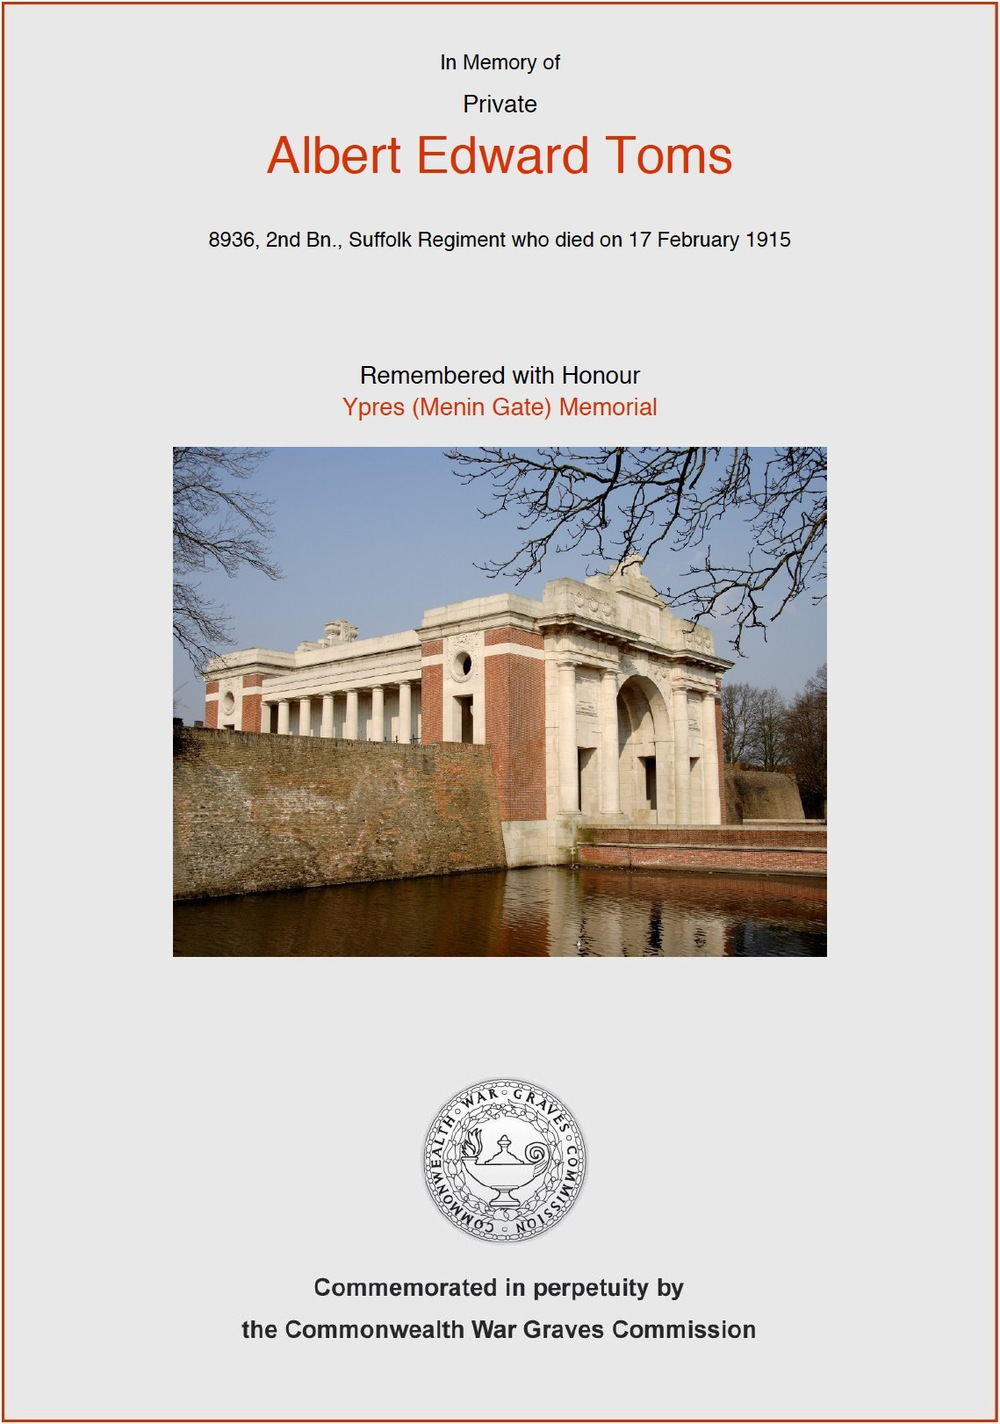 Private Tom's commemorative certificate from the CWGC website